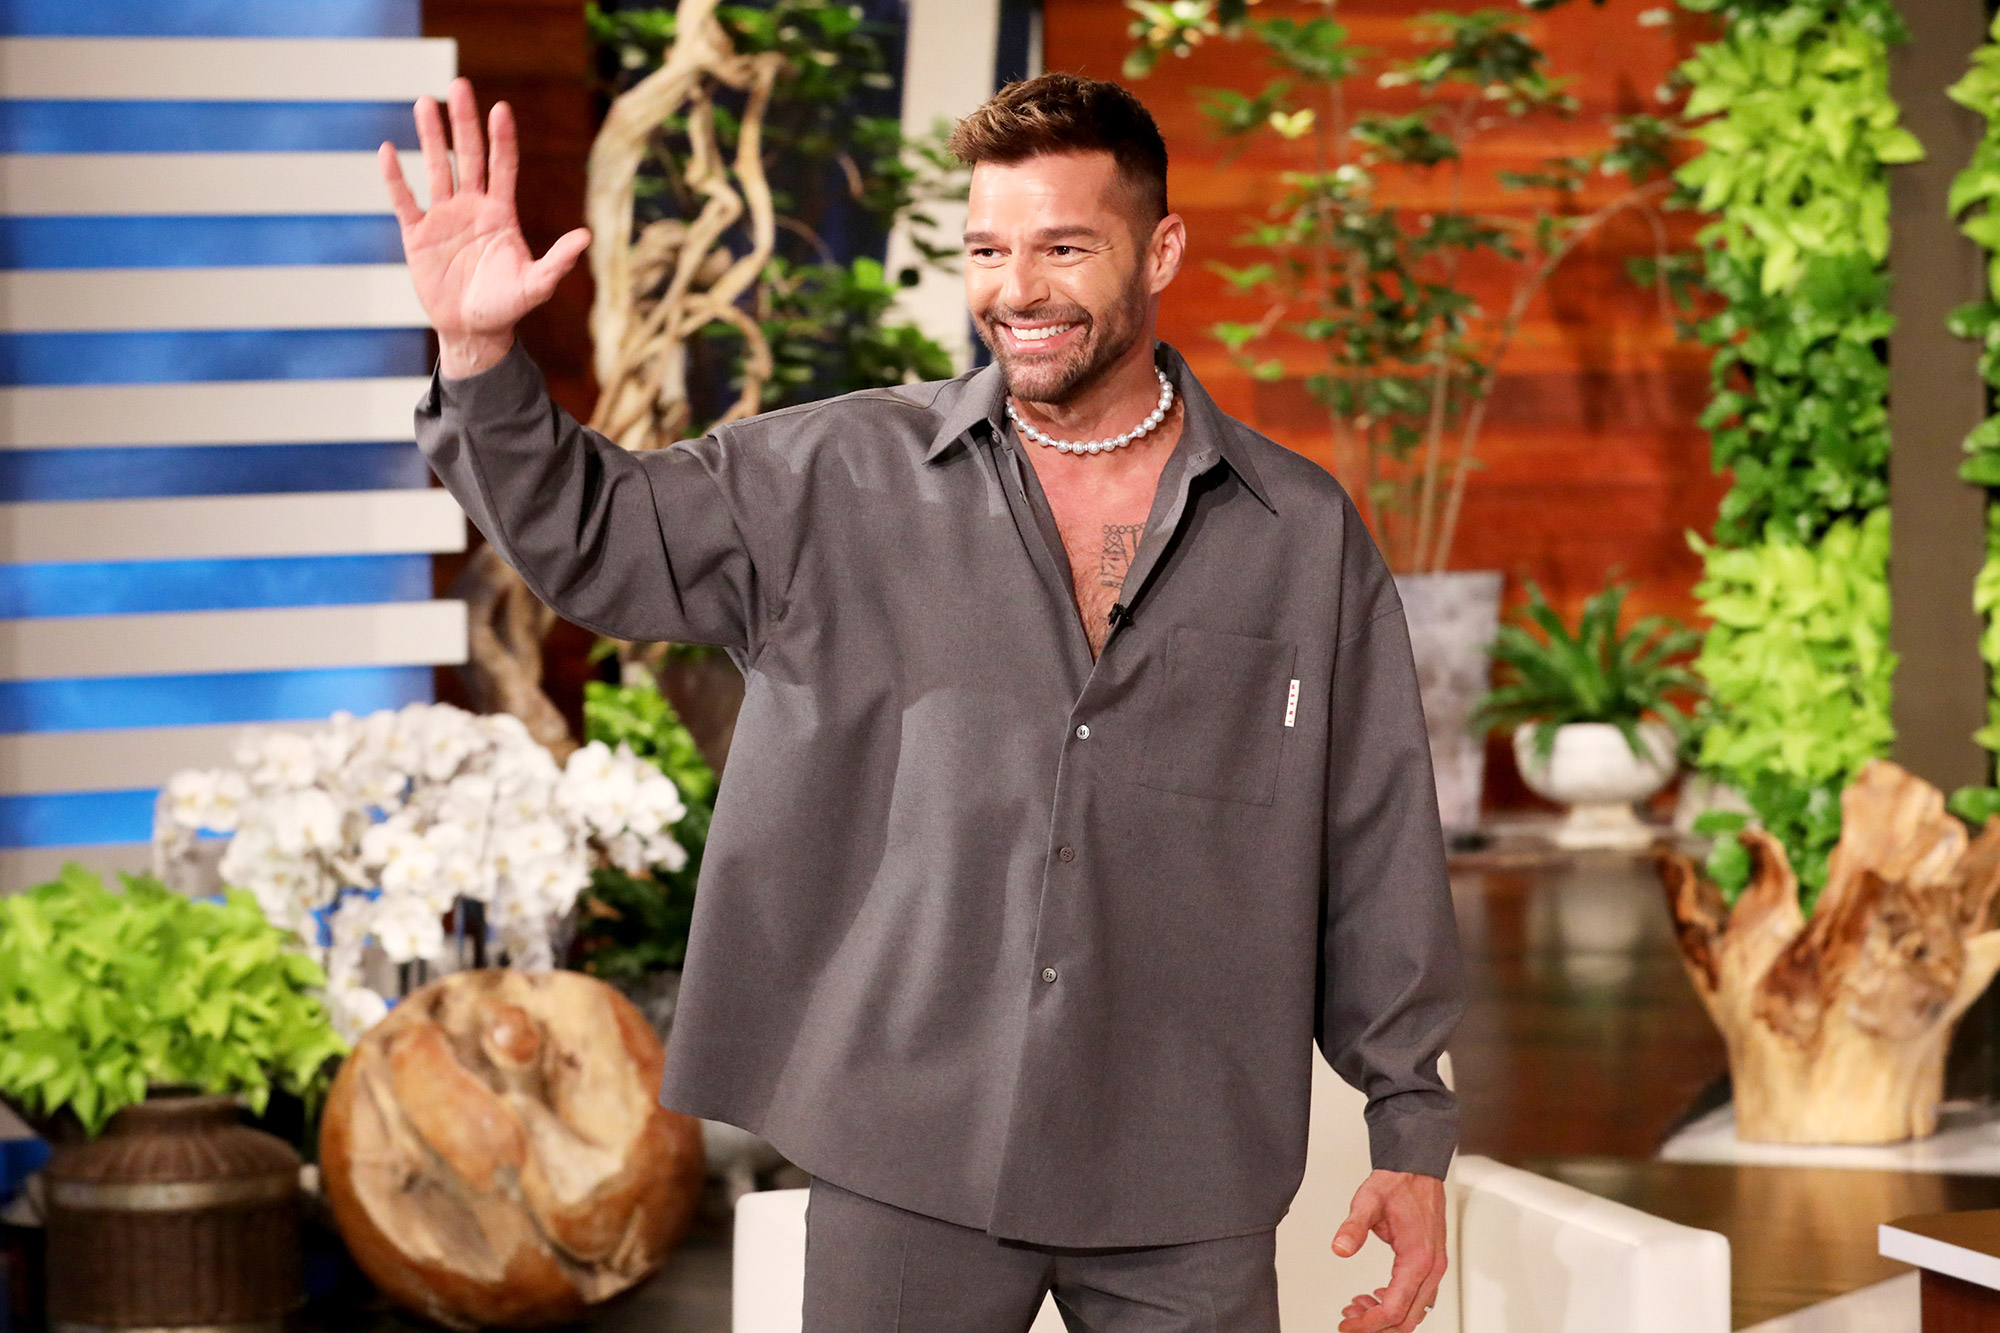 """International pop star Ricky Martin makes an appearance on """"The Ellen DeGeneres Show,"""" airing Monday, June 7th, and surprises Ellen with a delivery of over 3,000+ flowers to celebrate Ellen's 3,000+ shows!"""